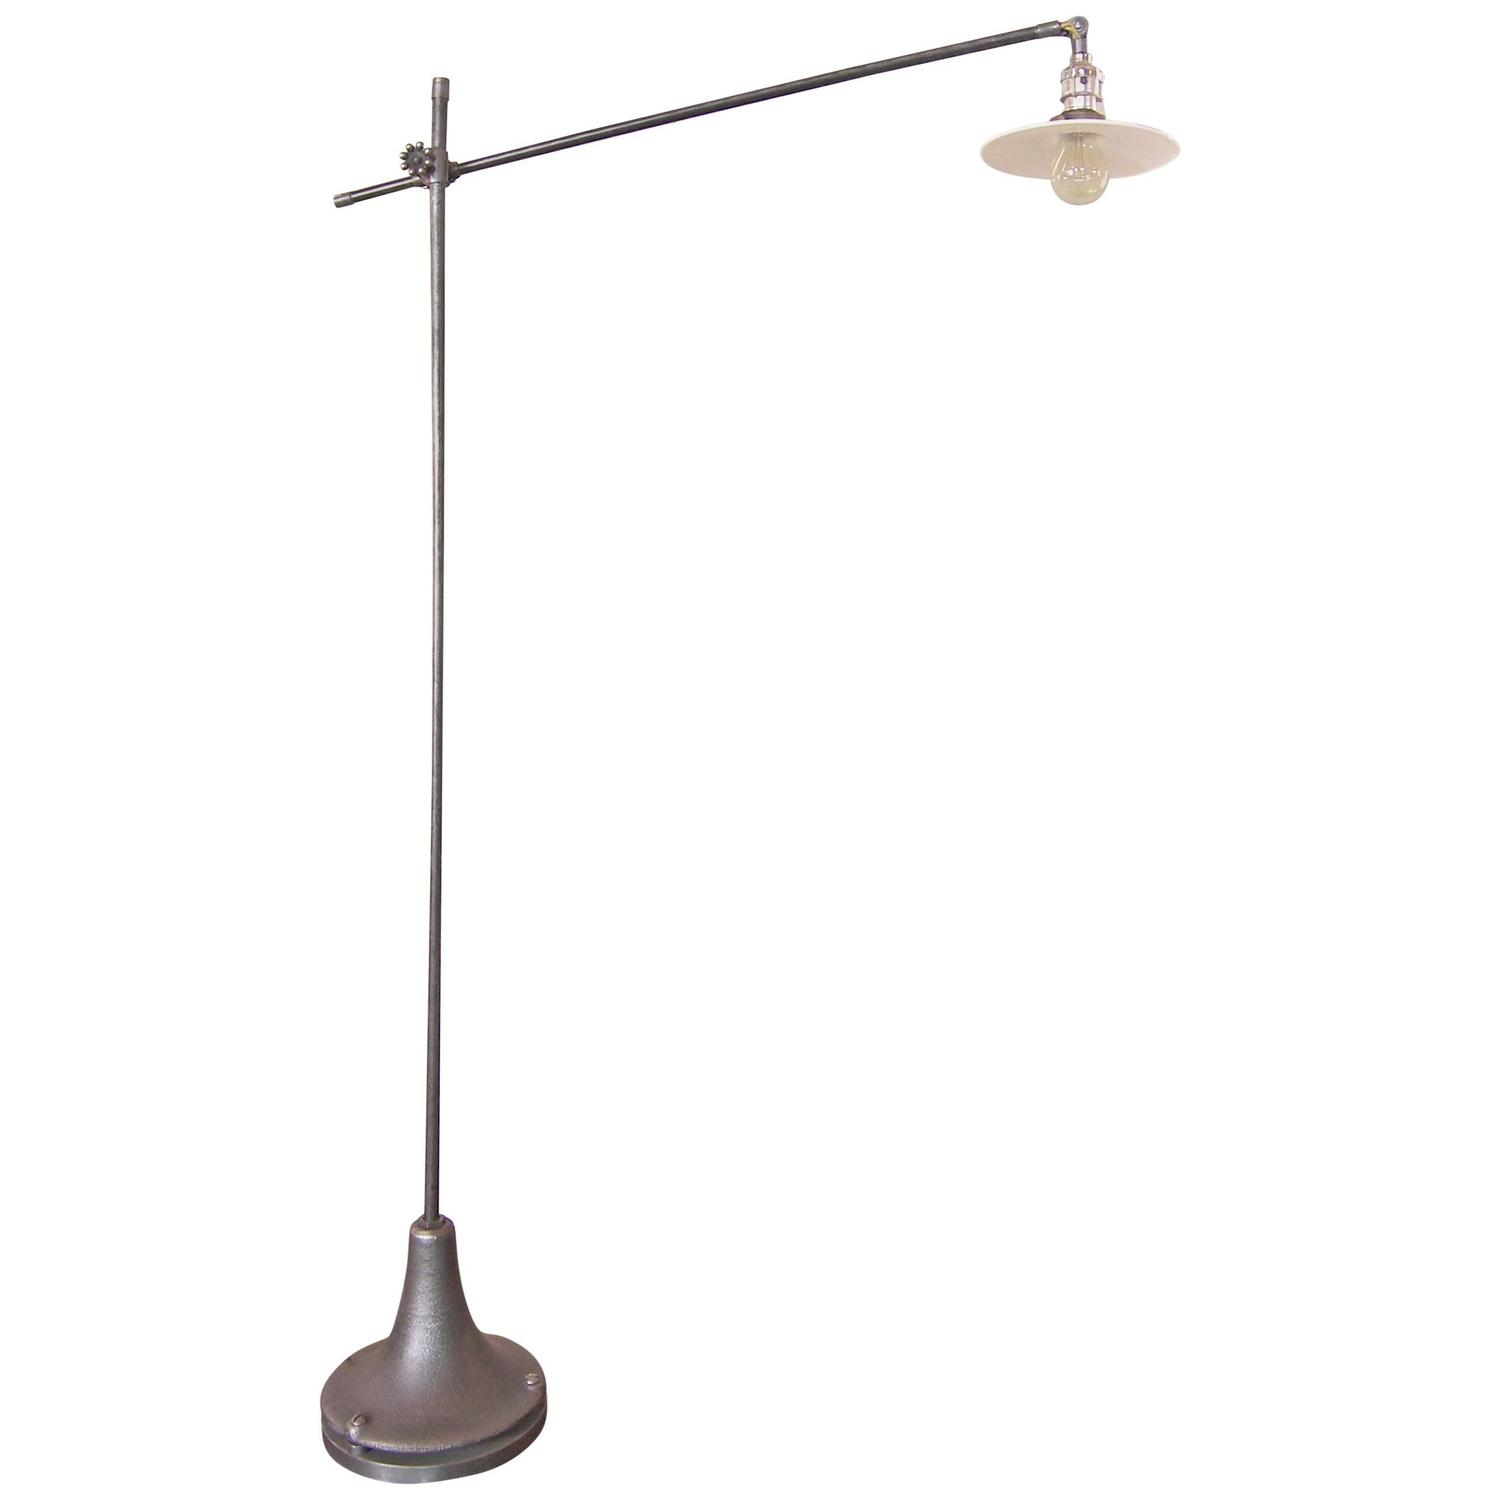 milk glass reading lamp vintage industrial cast iron floor light for. Black Bedroom Furniture Sets. Home Design Ideas